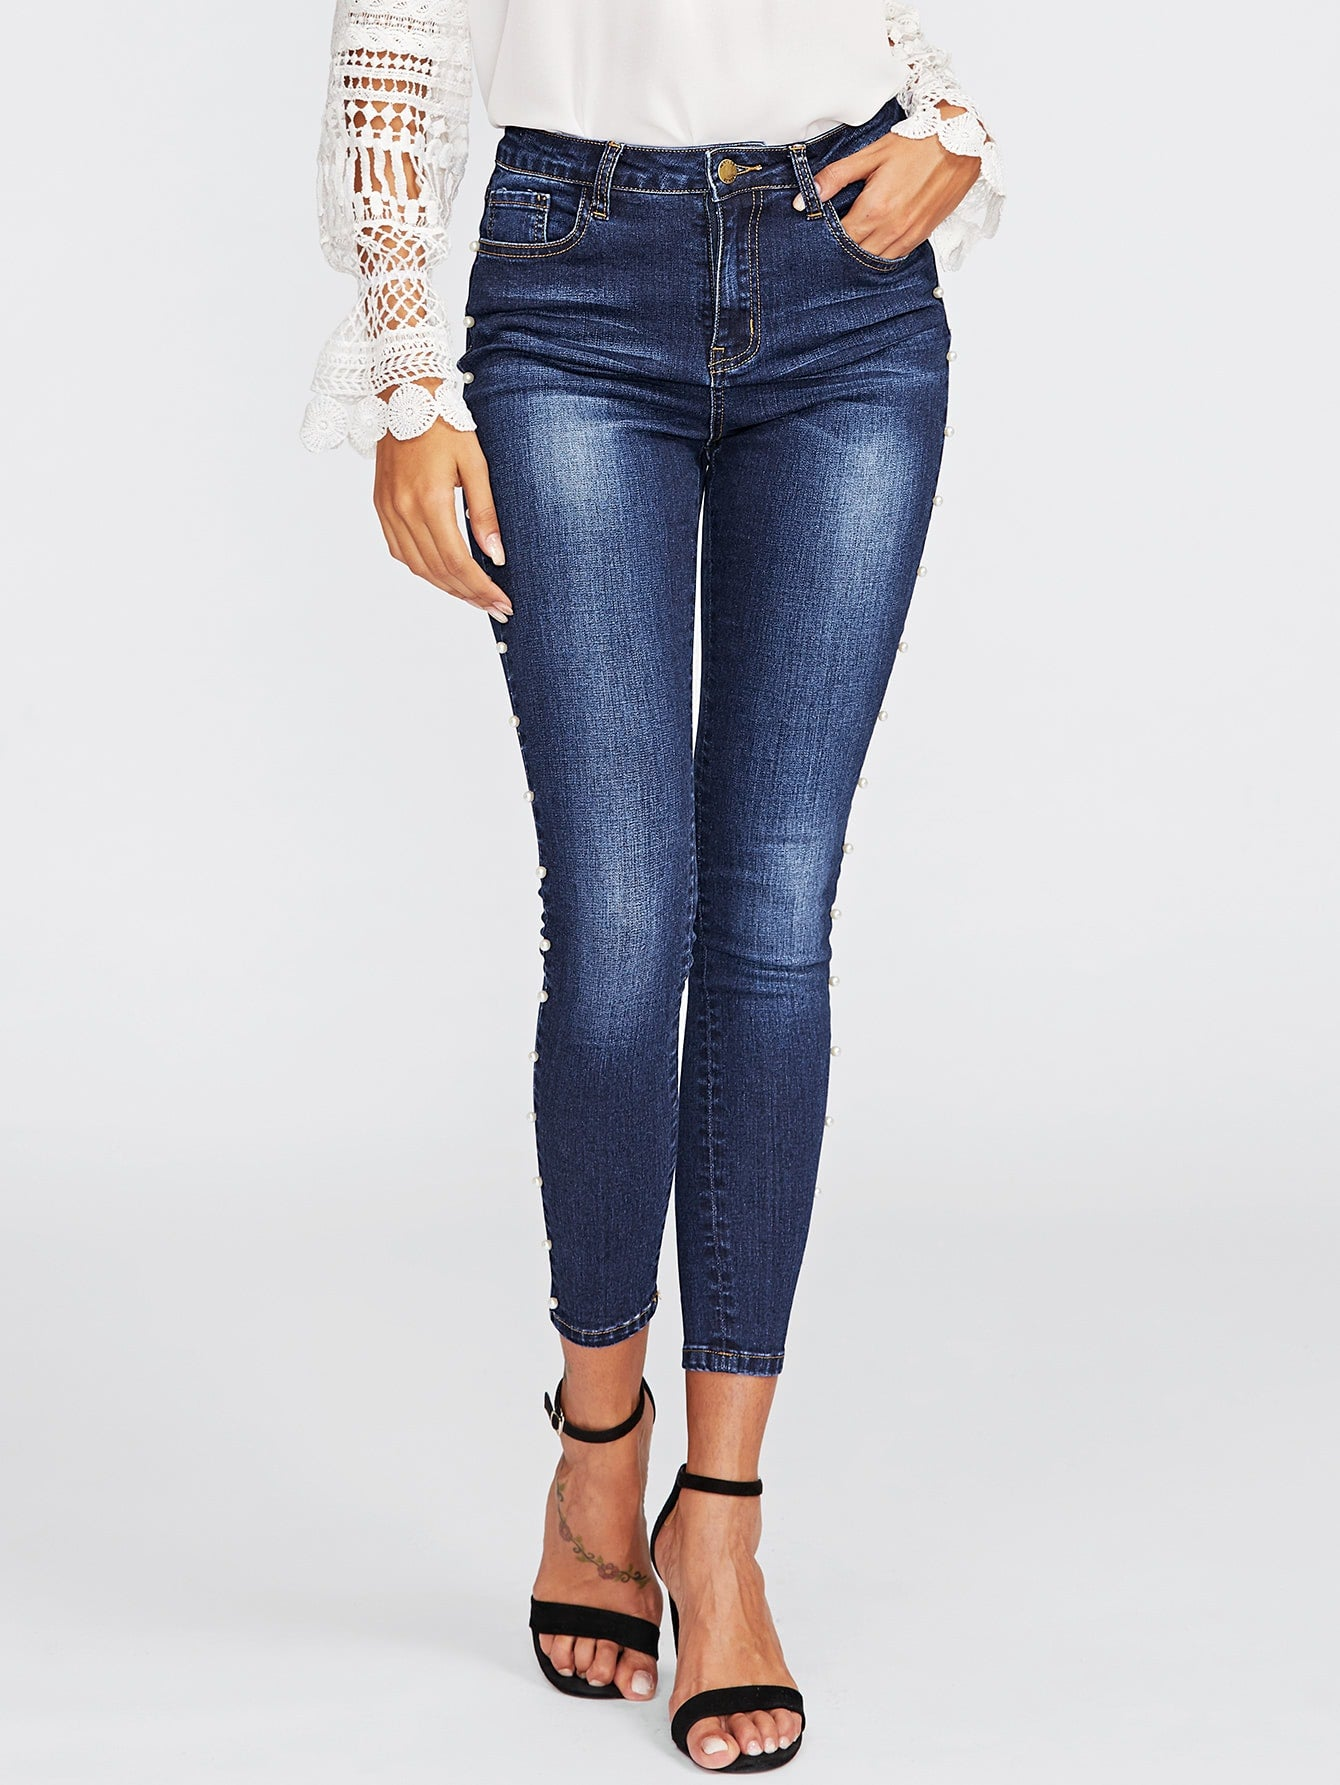 Pearl Beaded Faded Wash Skinny Jeans | Jeans | SHEIN | Joan & Vern's Apparel